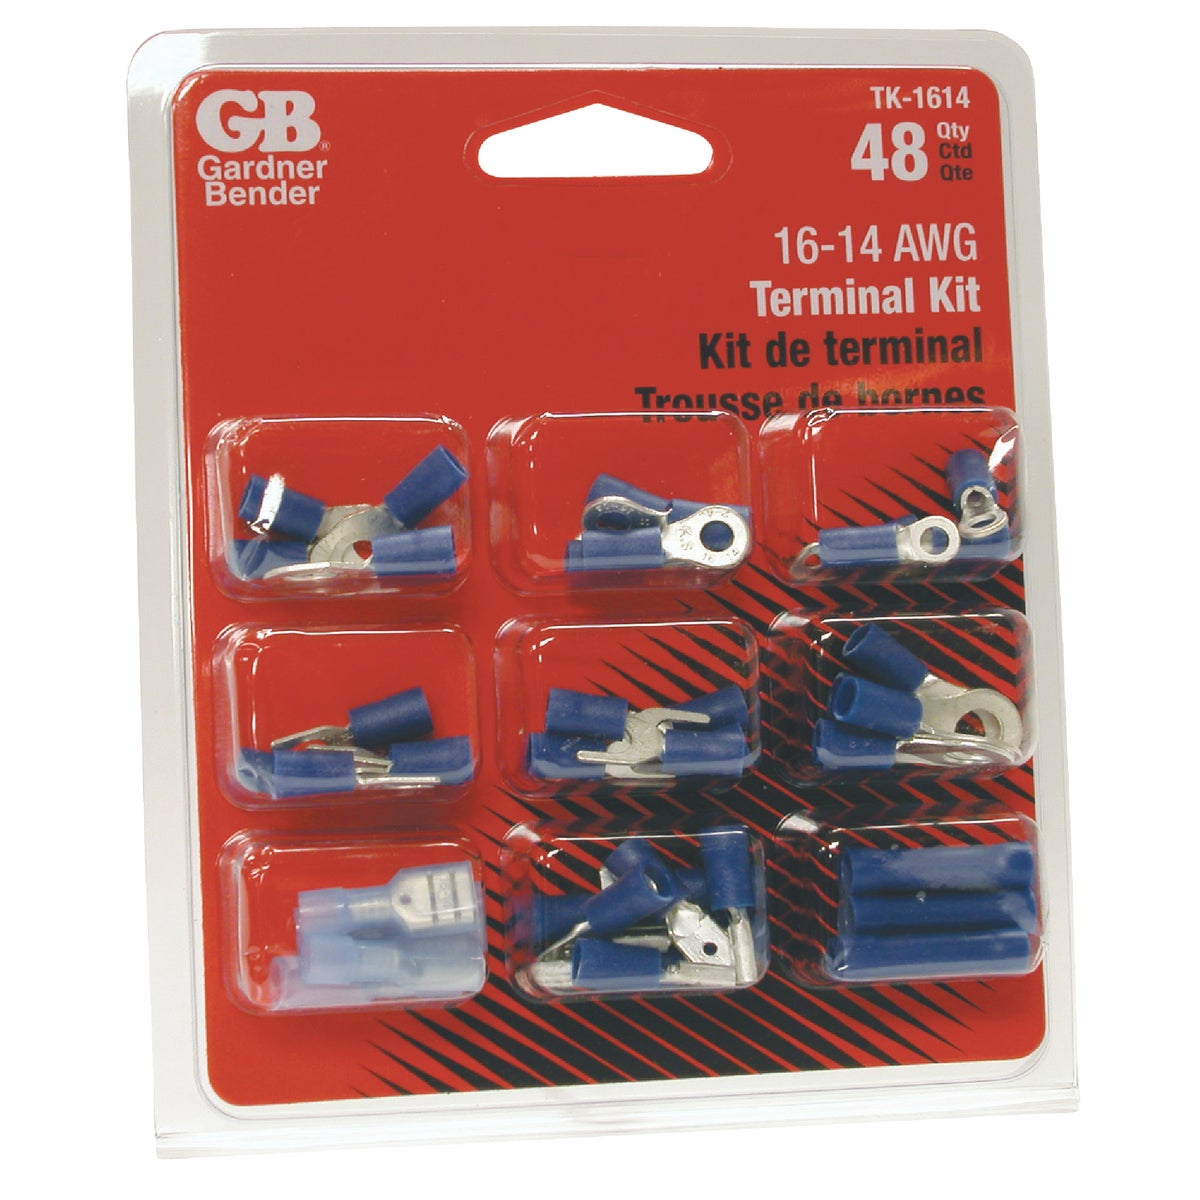 GB Electrical 14-16 AWG TERMINAL KIT TK-1614